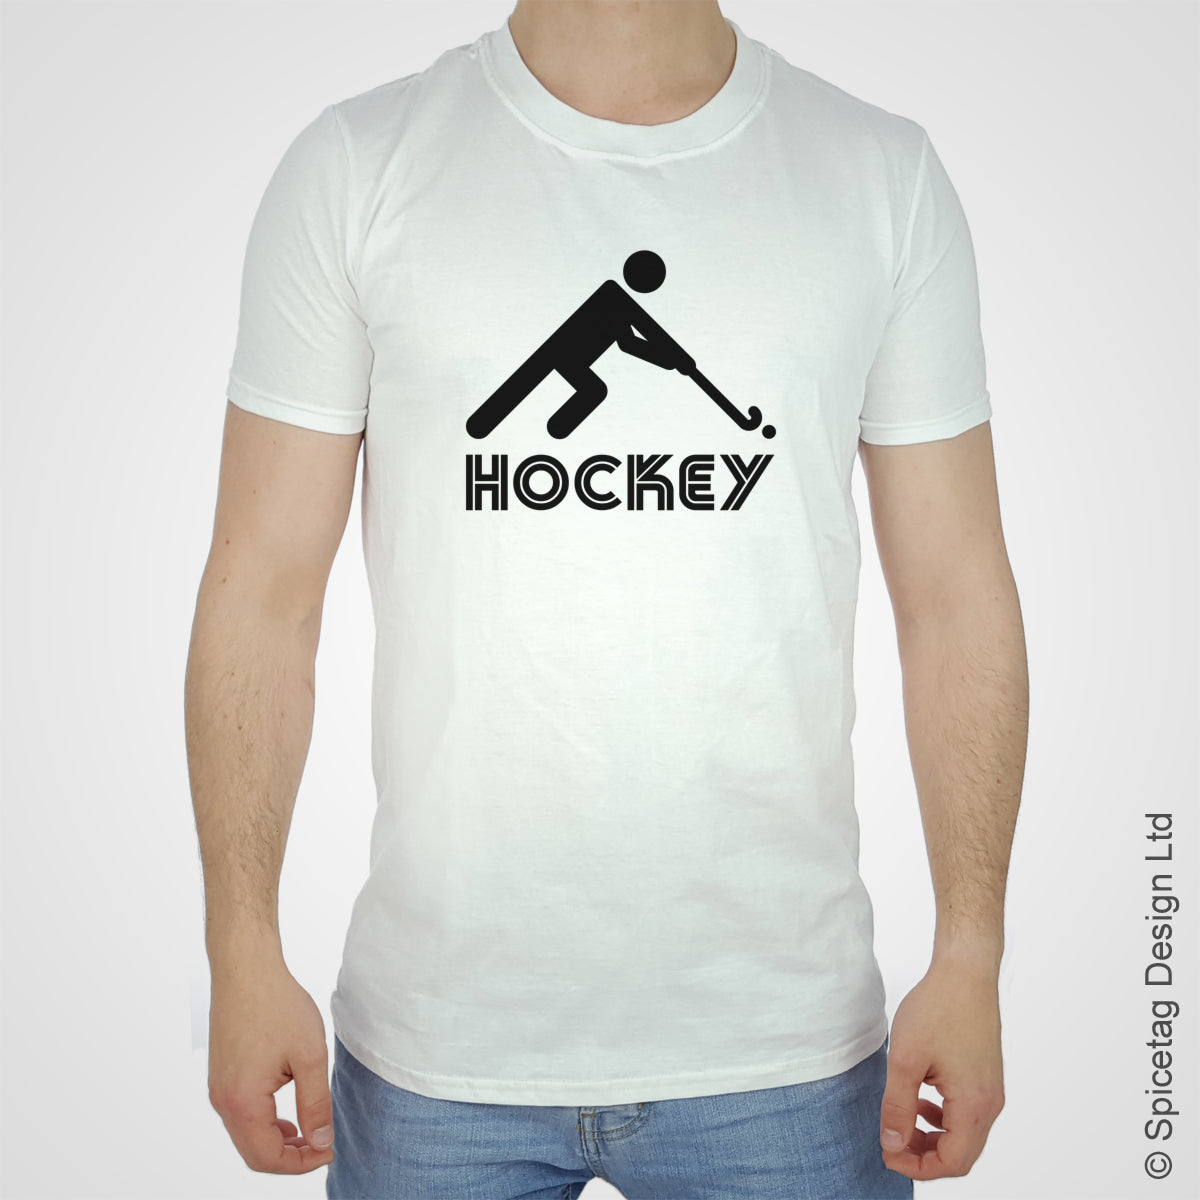 Hockey T-shirt Tshirt T shirt Tee clothing clothes fashion style sport sports fan olympics athletics track field health fitness world competition champion